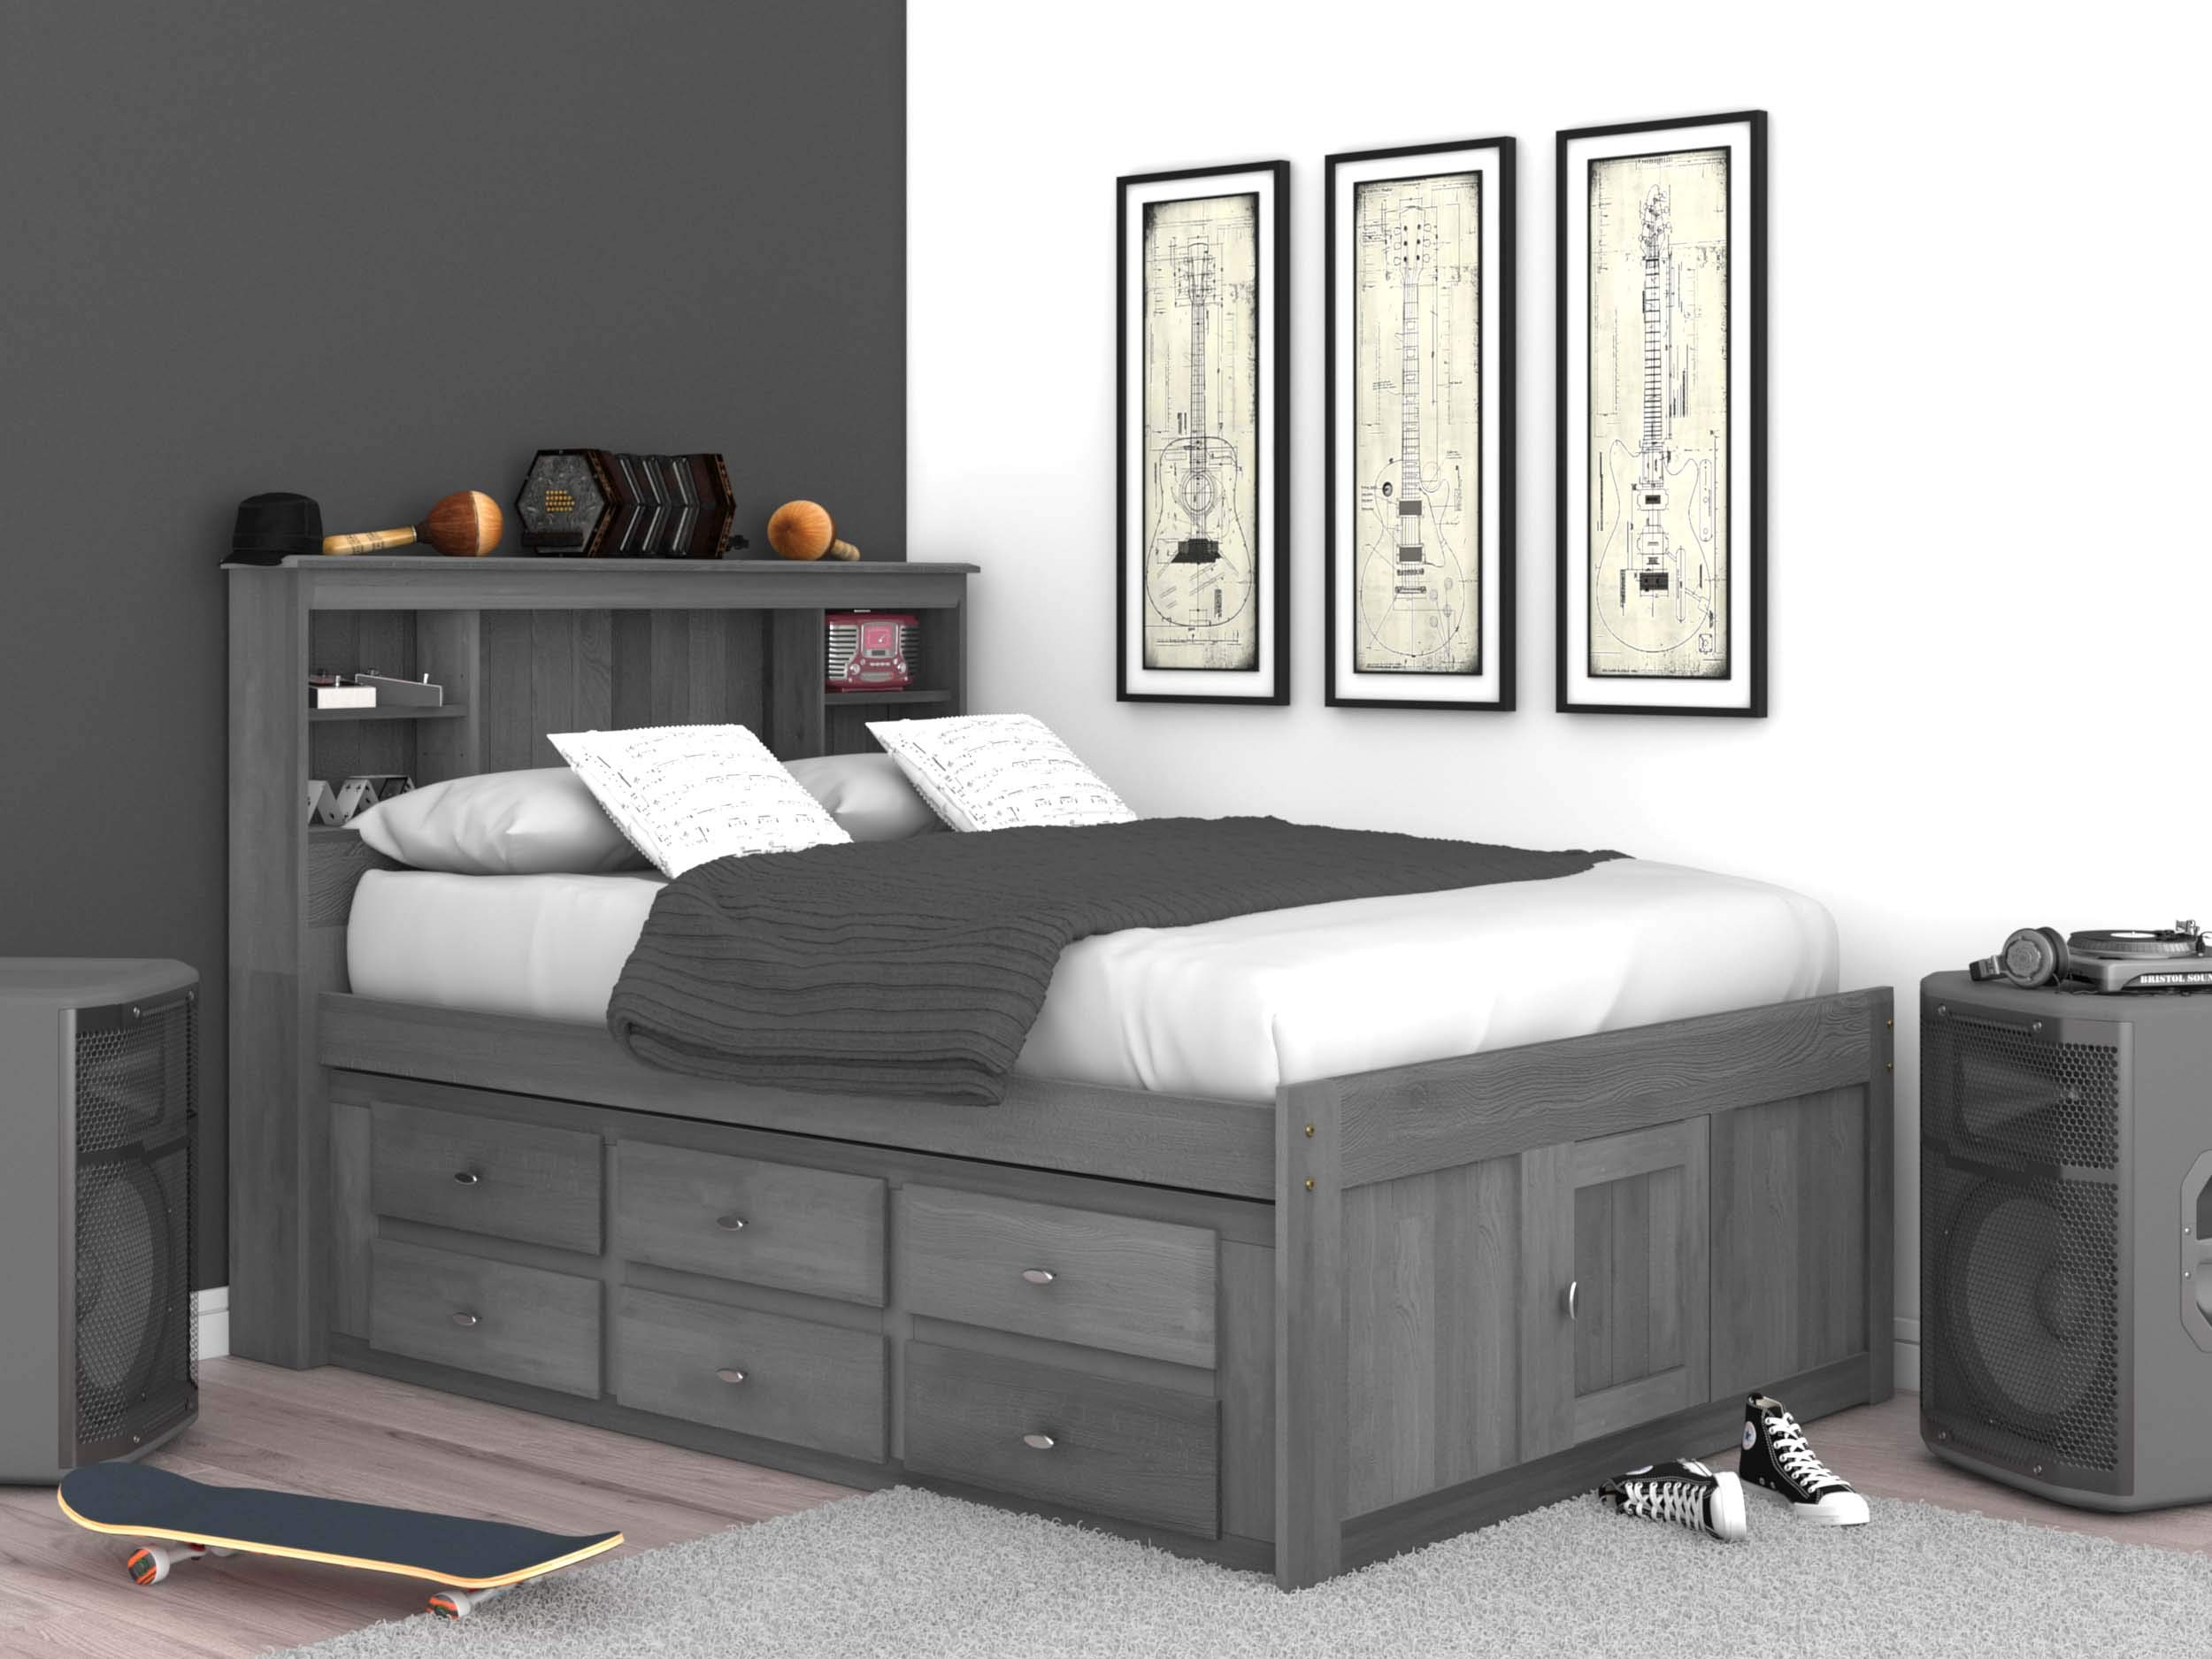 Discovery World Furniture Charcoal Full Bookcase Bed with 6 Drawers by Discovery World Furniture